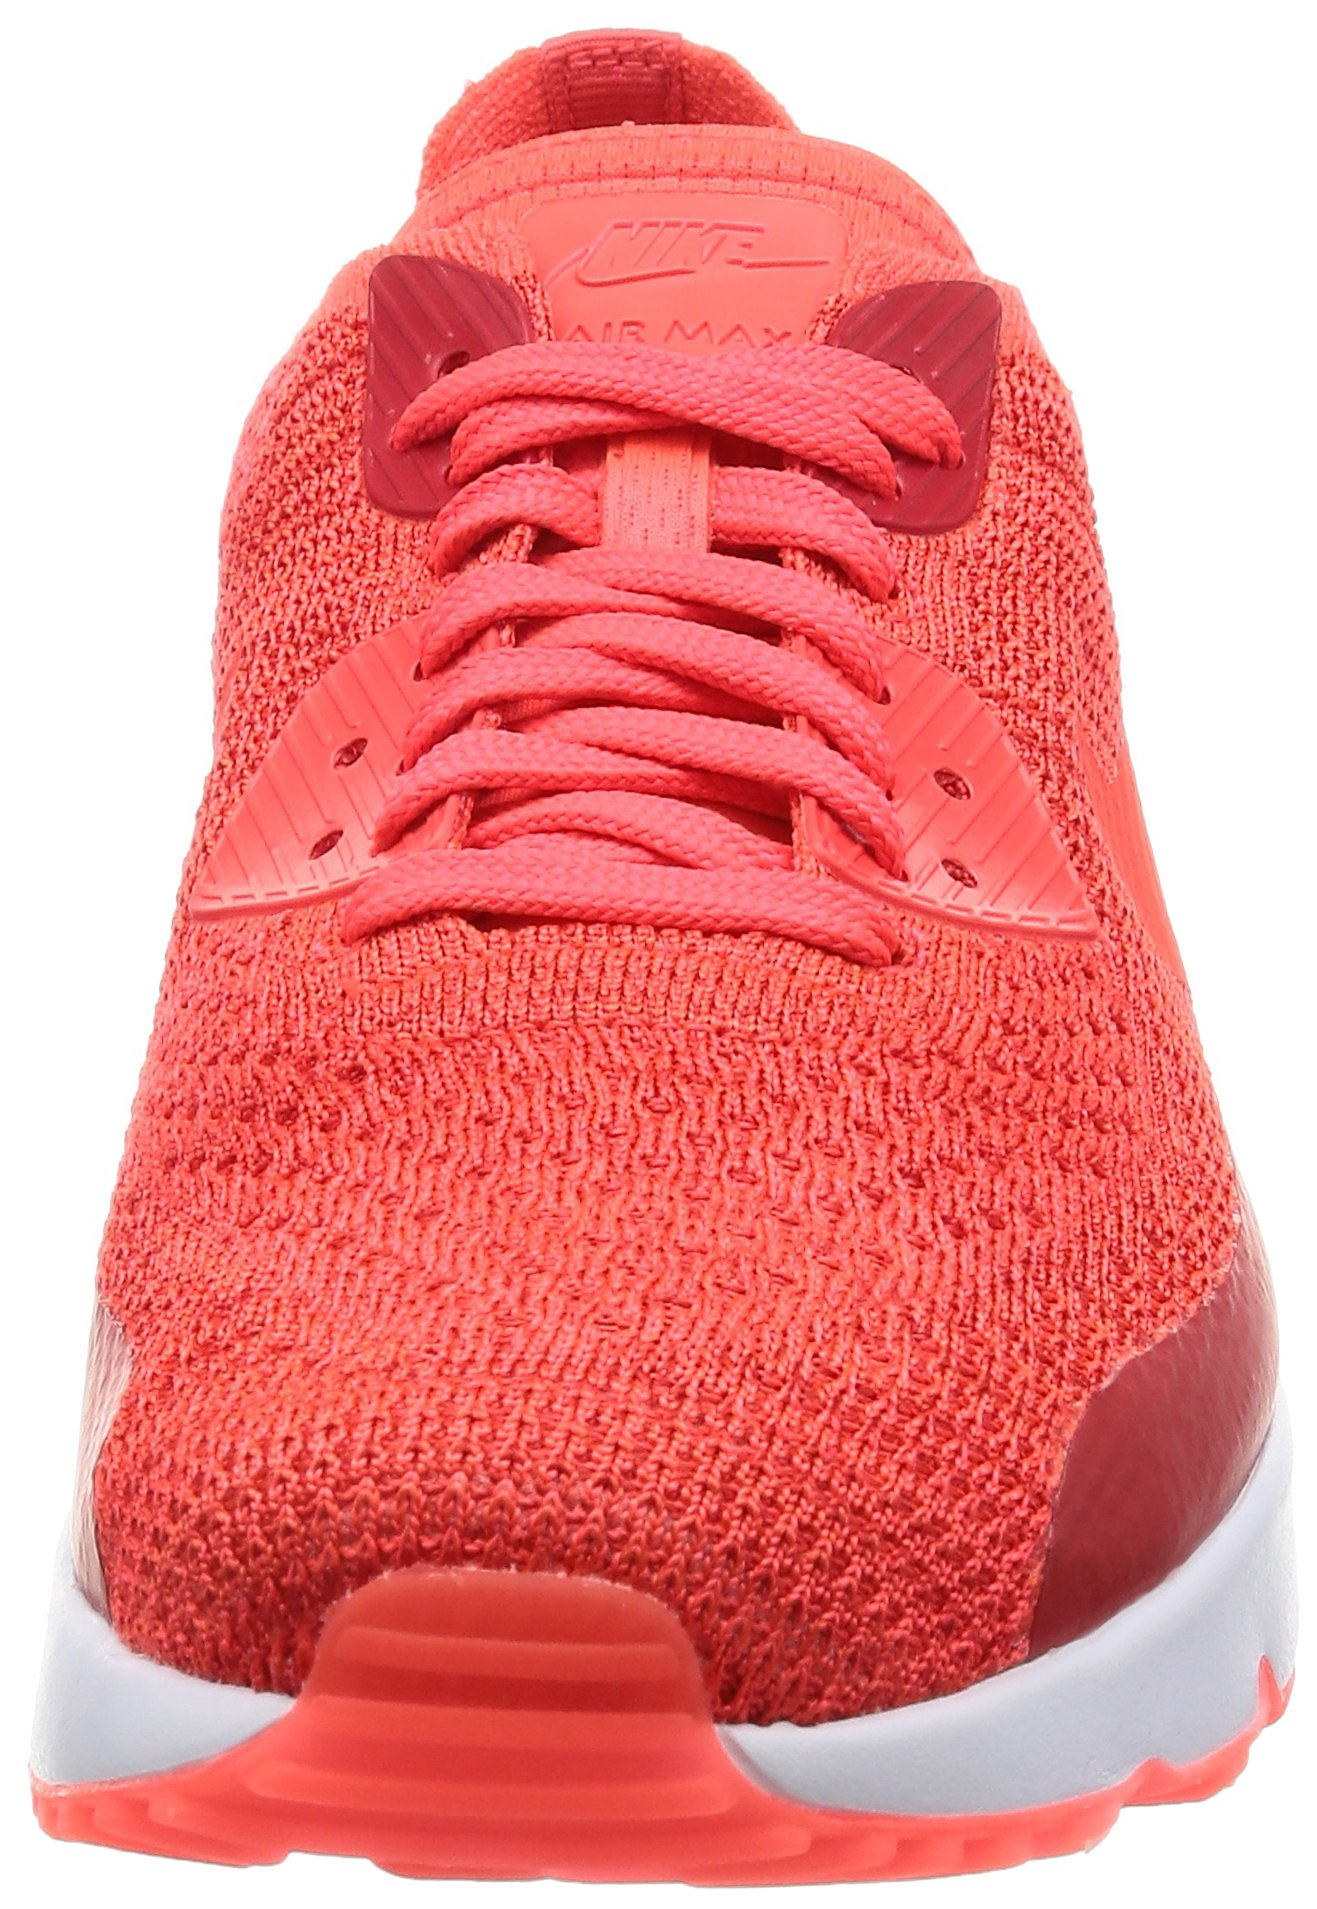 Bright 2 M Crimson Flyknit 90 Ultra Max D Men's Shoe Running NIKE US 0 Air 9 Uqf67xX